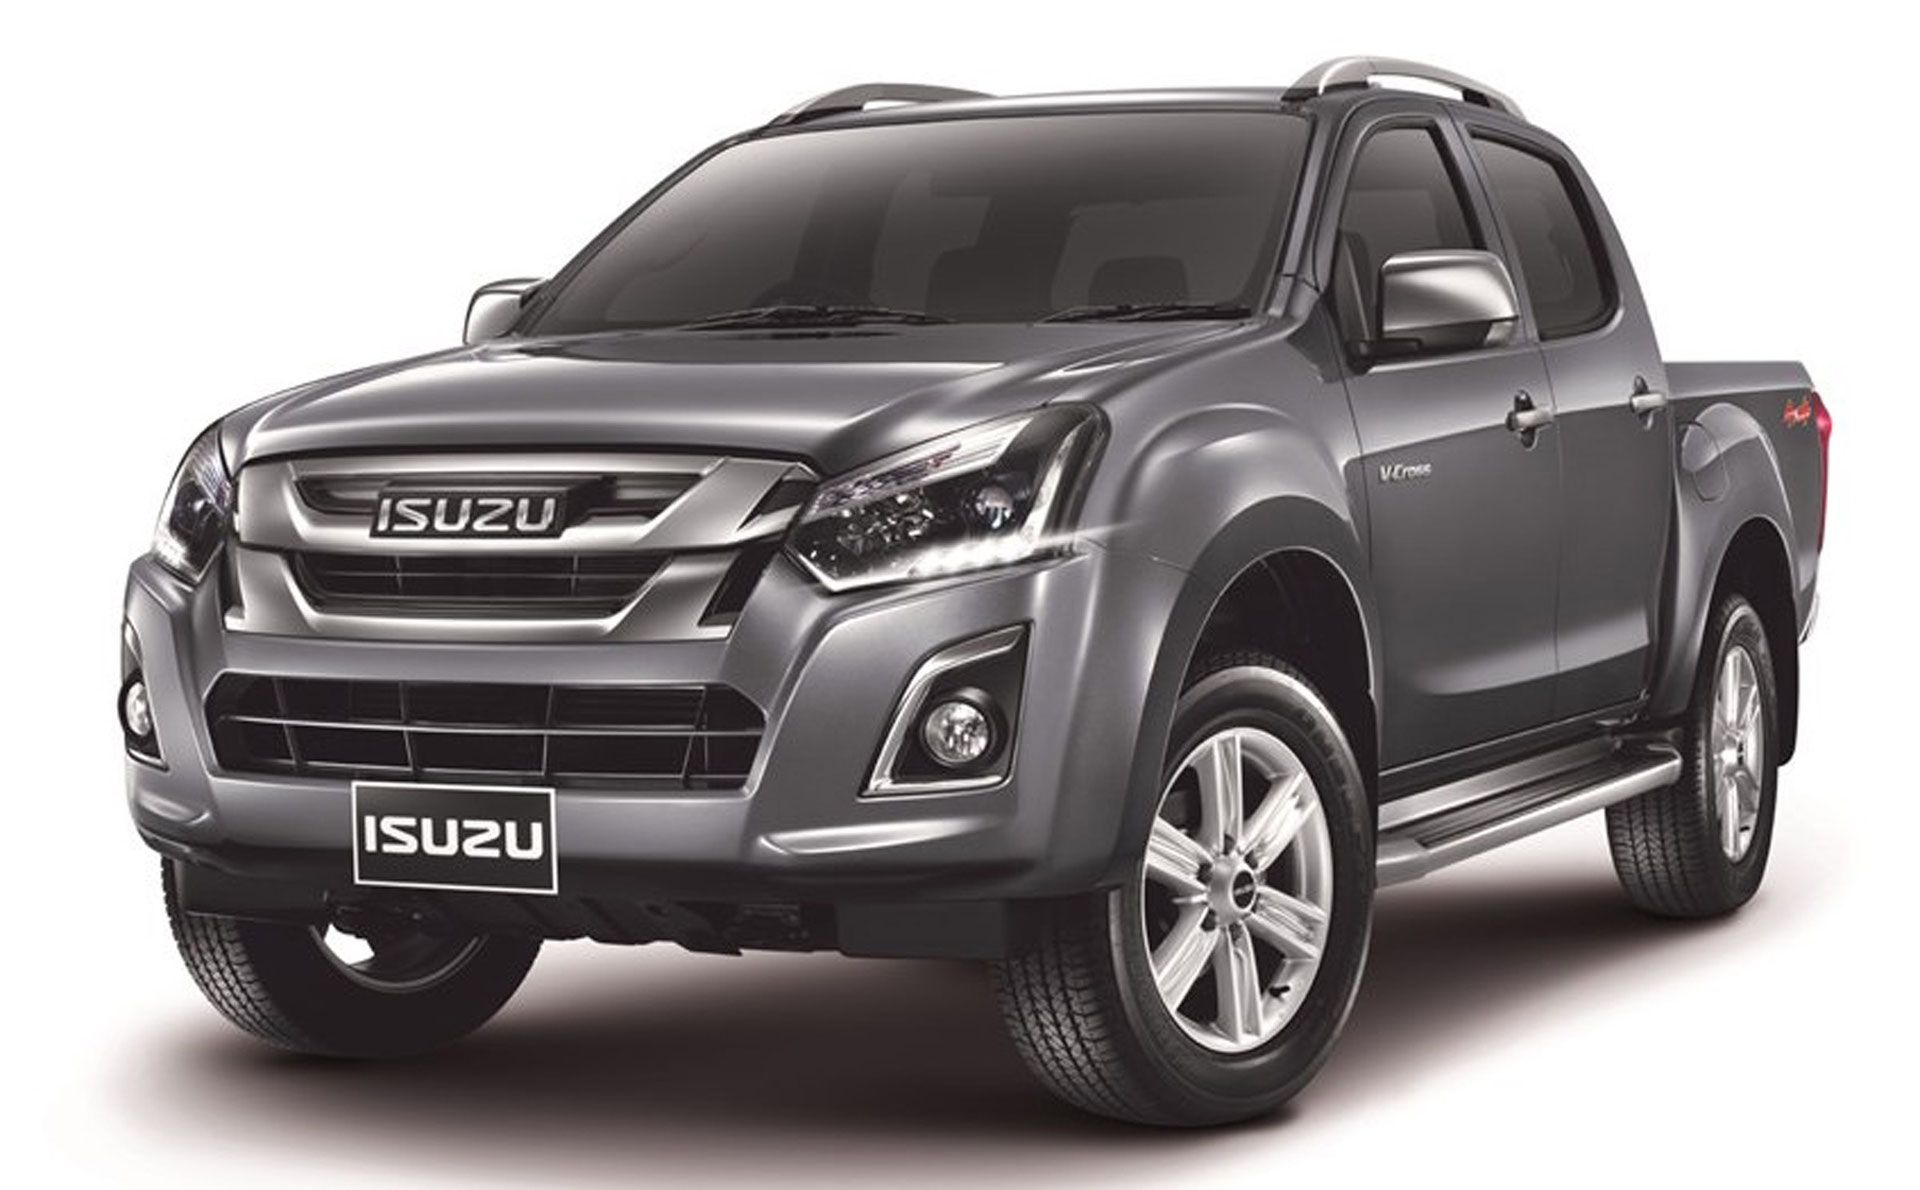 Isuzu Rodeo Owners Manual Axiom Wiring Diagram Manuals Download For Free Ar Fault Codes 1920x1190